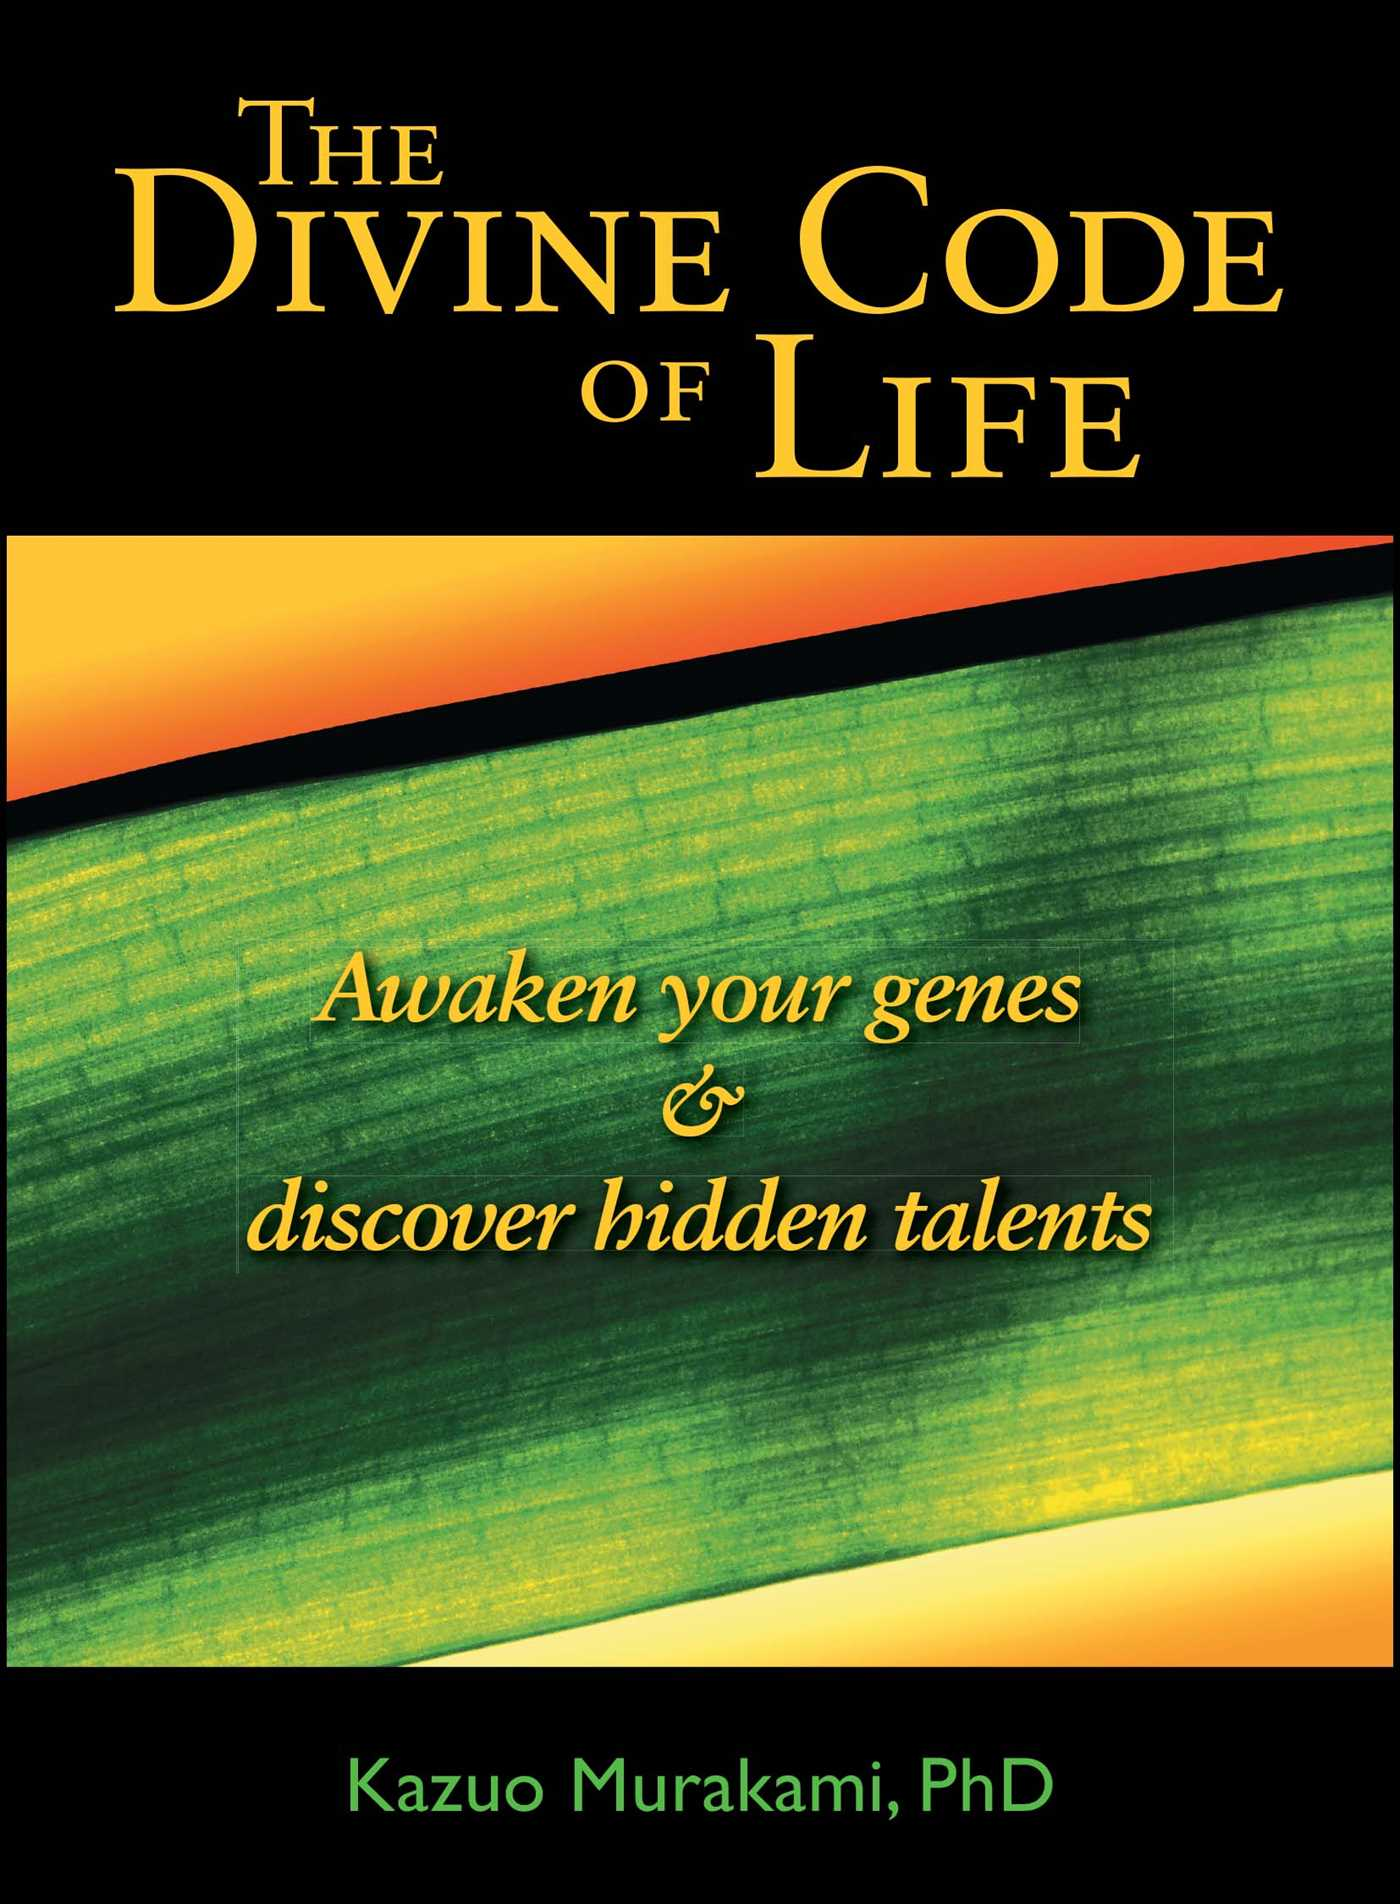 The divine code of life 9781582706702 hr